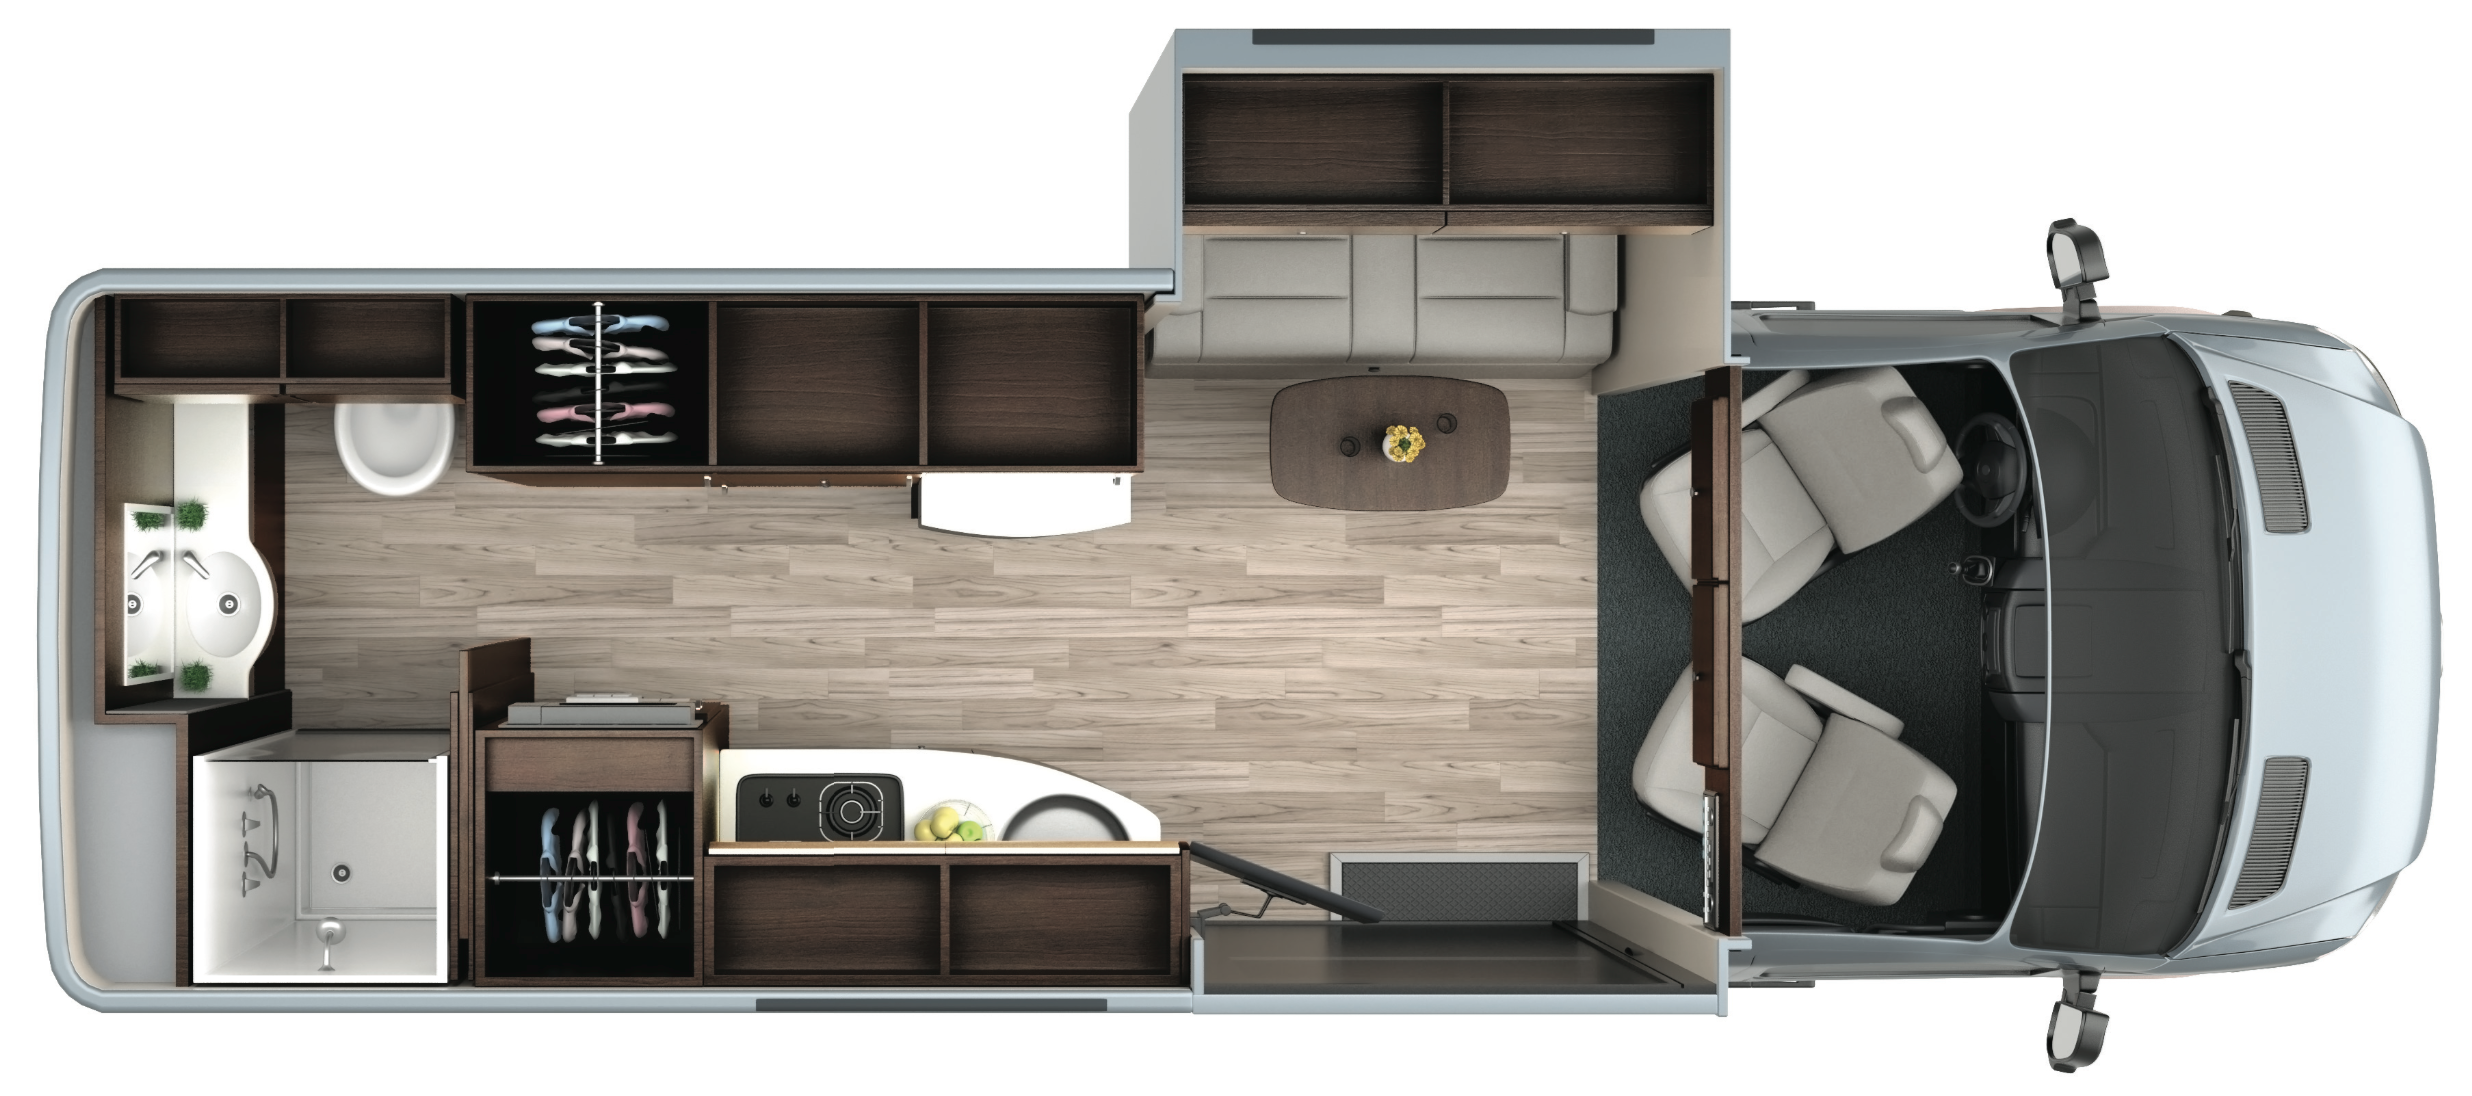 The LTV Free Spirit SS floorpan showing the interior storage areas in dark brown, plus an outside storage area accessible from the rear doors. The slide-out has storage cabinets above the sofa that converts to a bed.